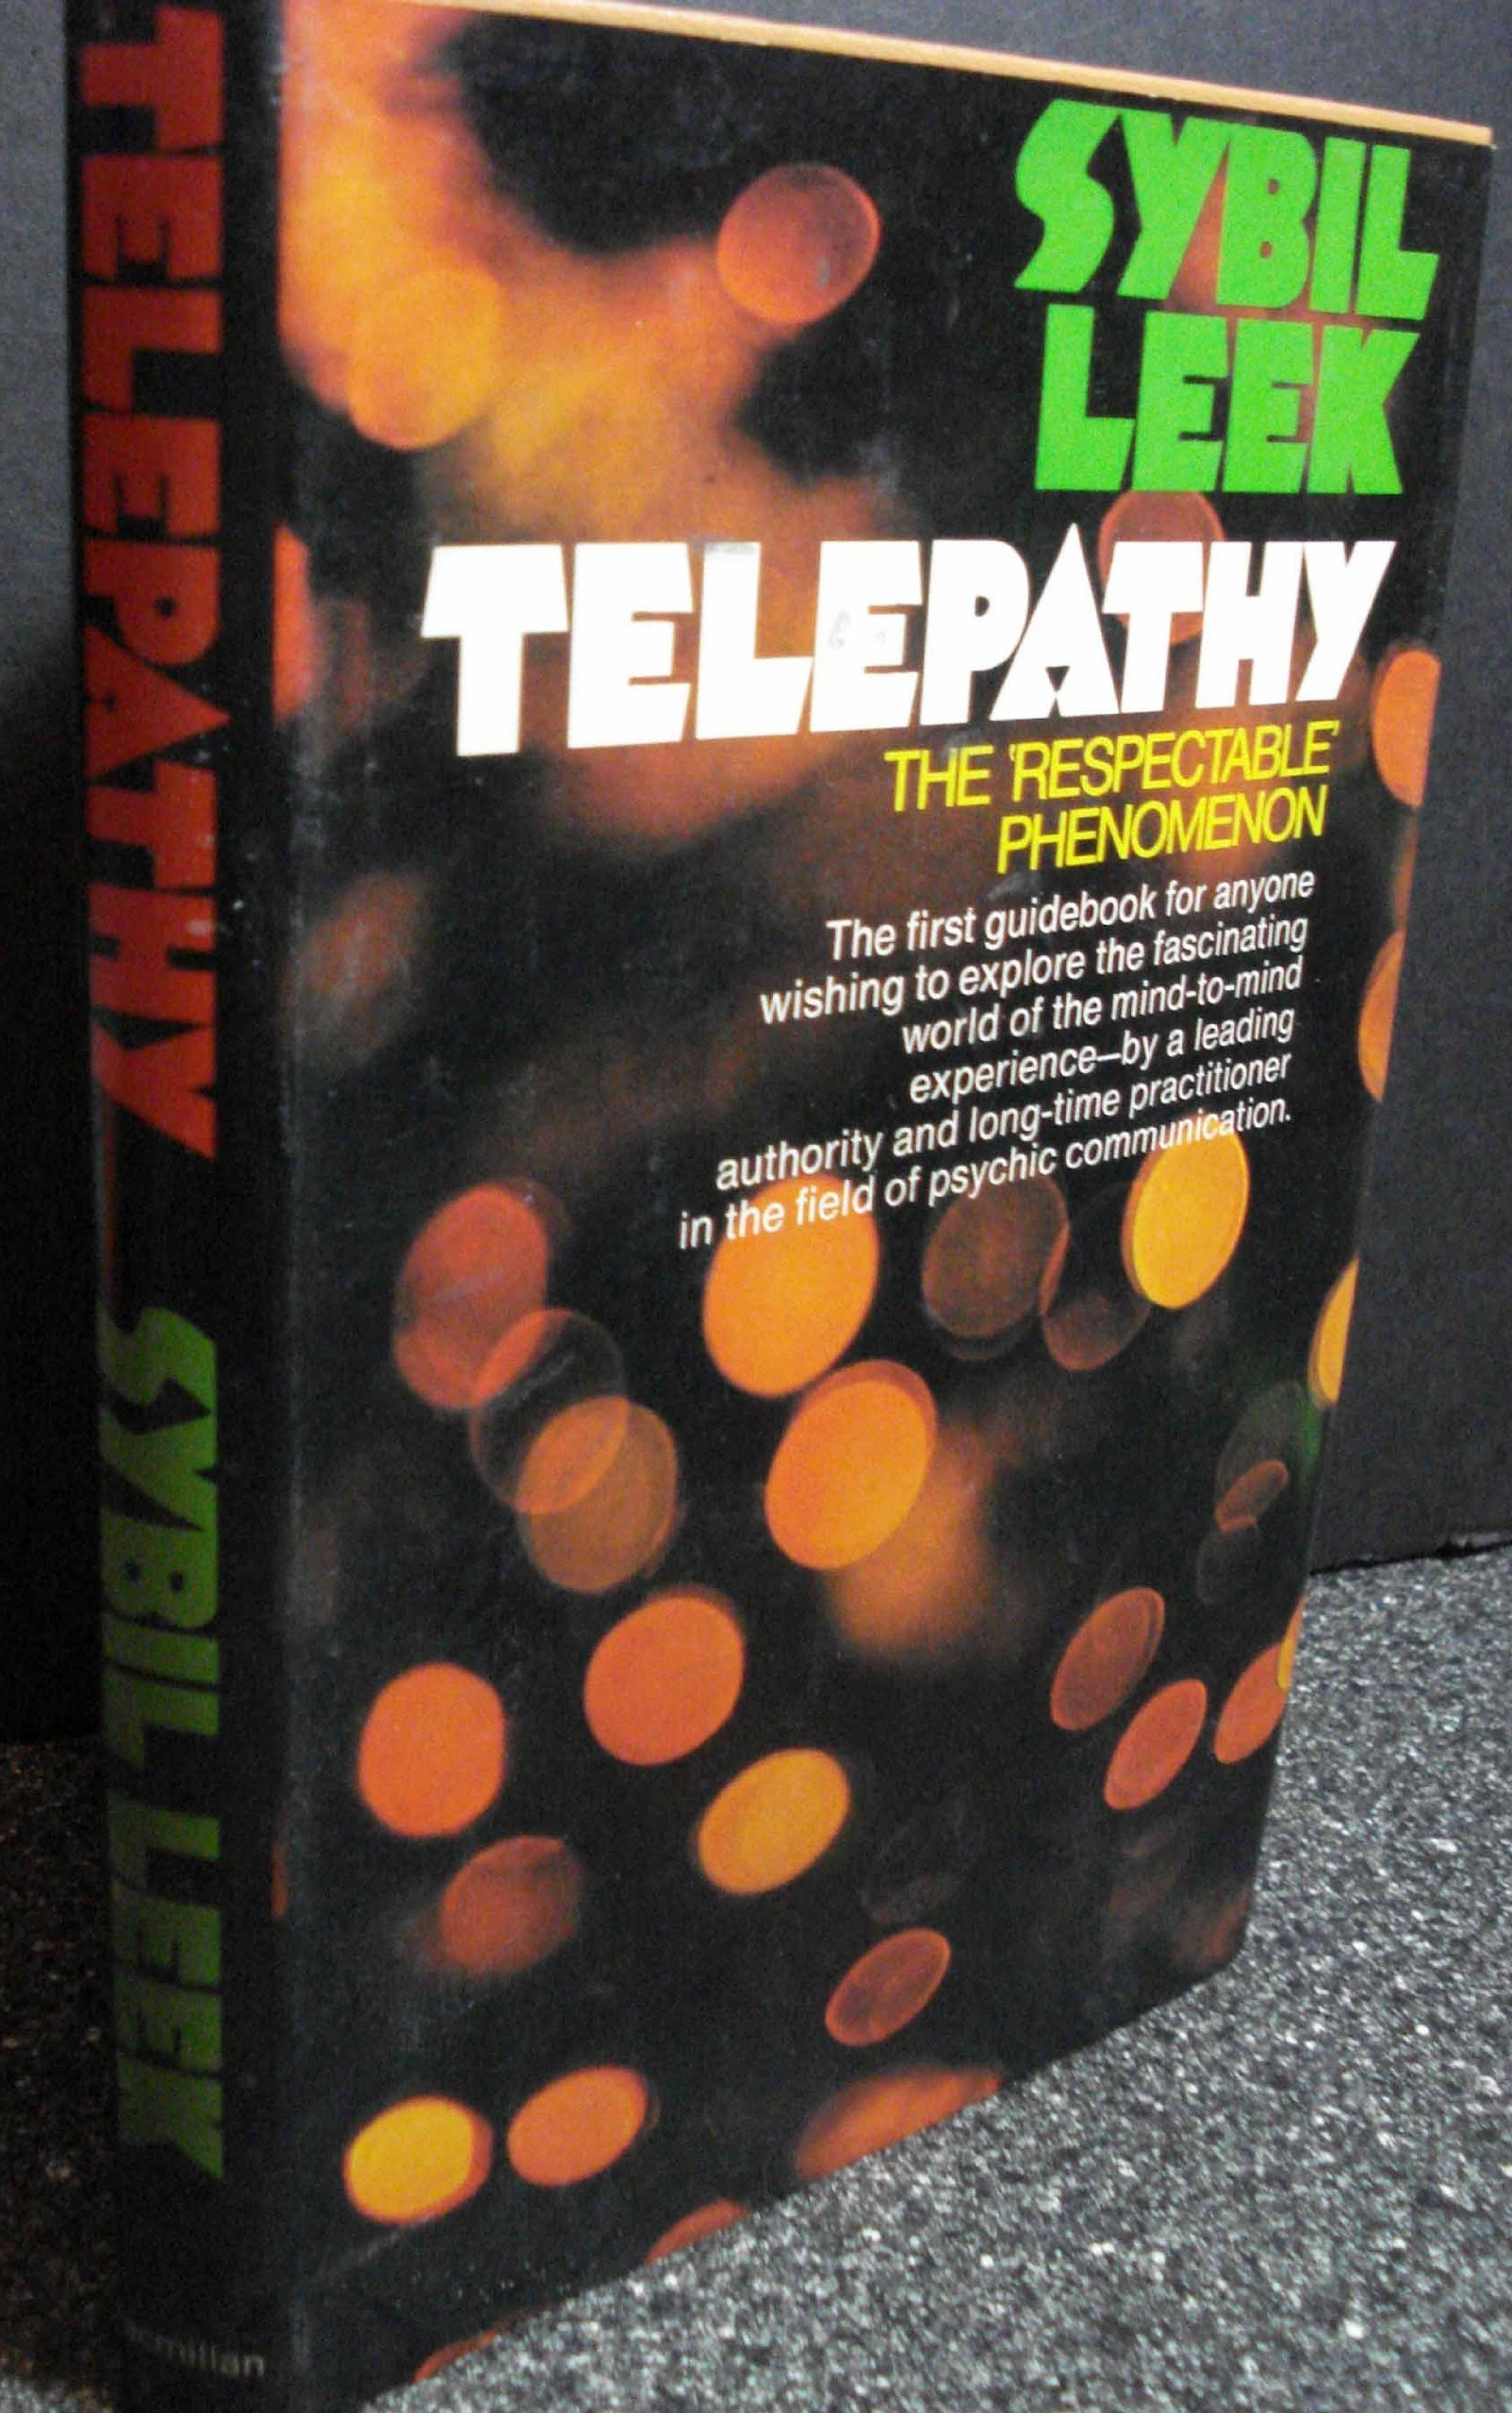 Telepathy: The Respectable Phenomenon Sybil Leek